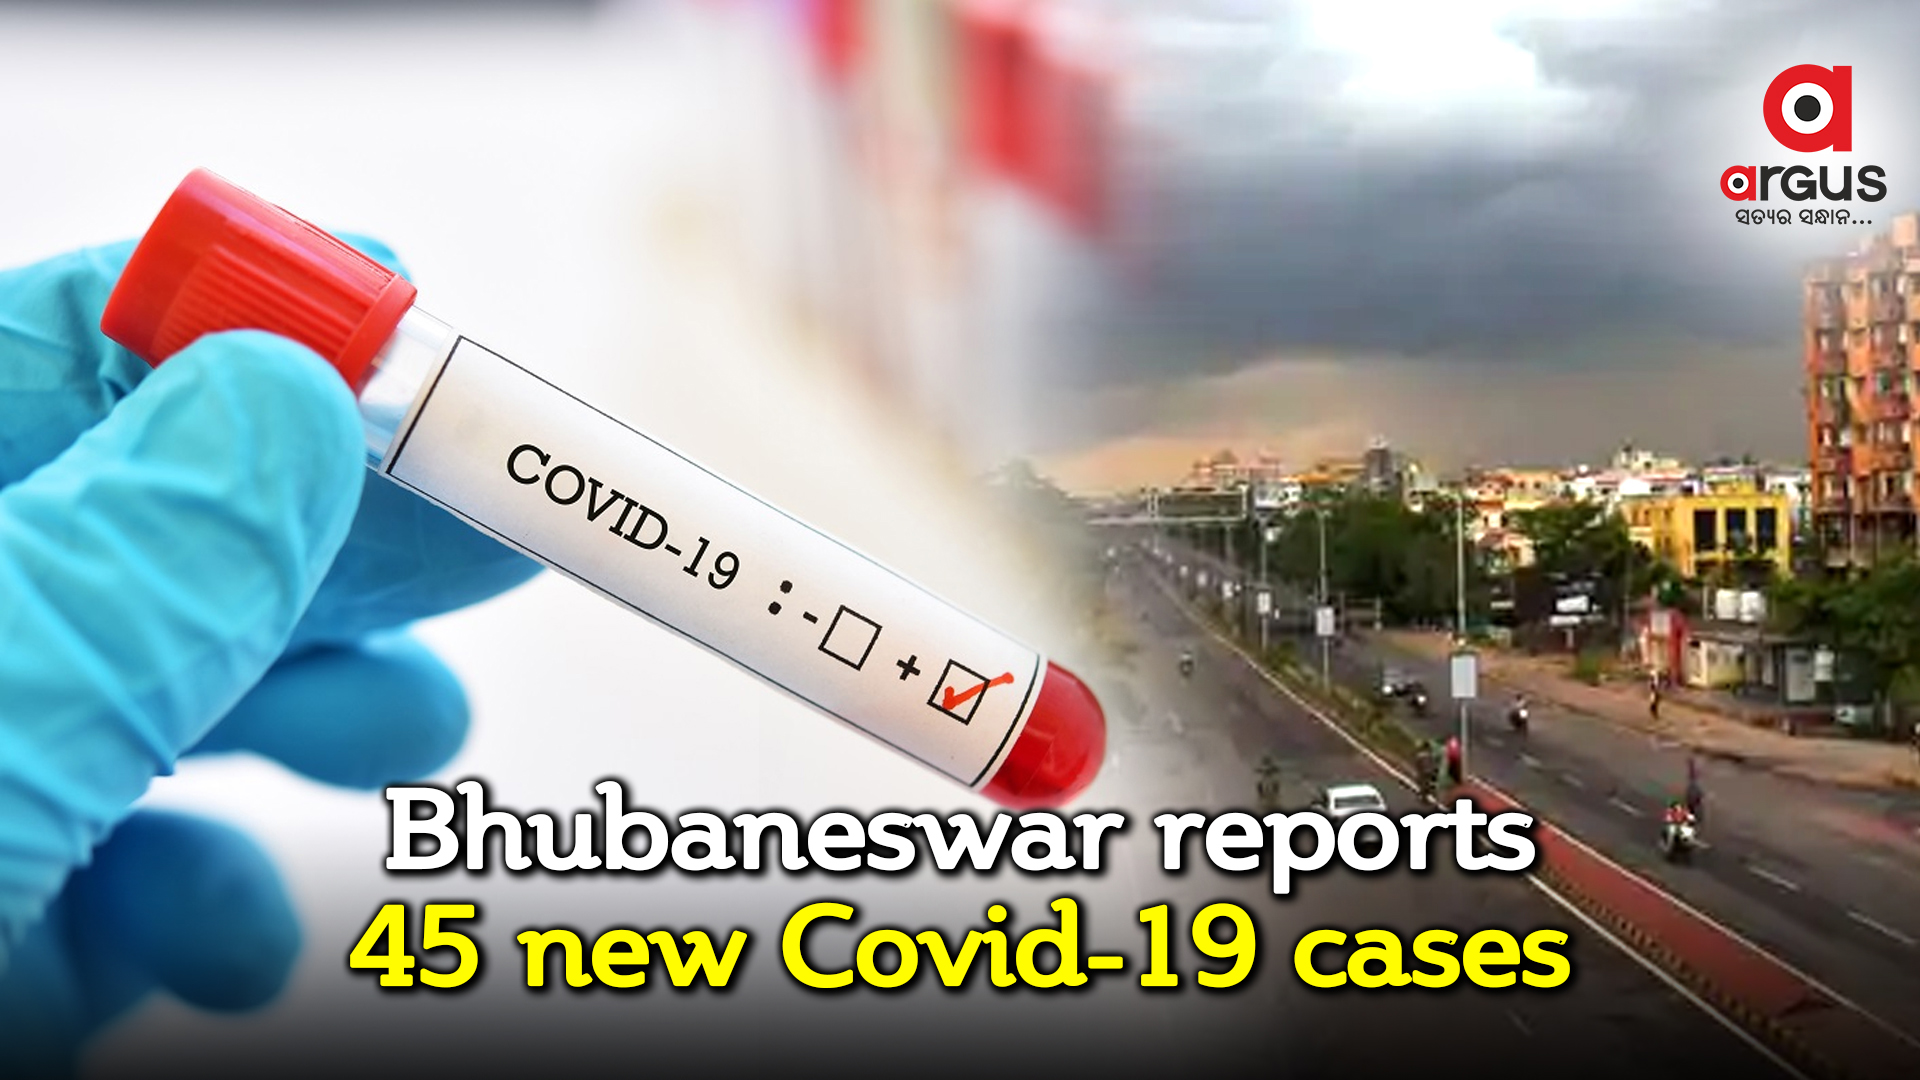 Bhubaneswar reports 45 new Covid-19 cases, 12 recoveries